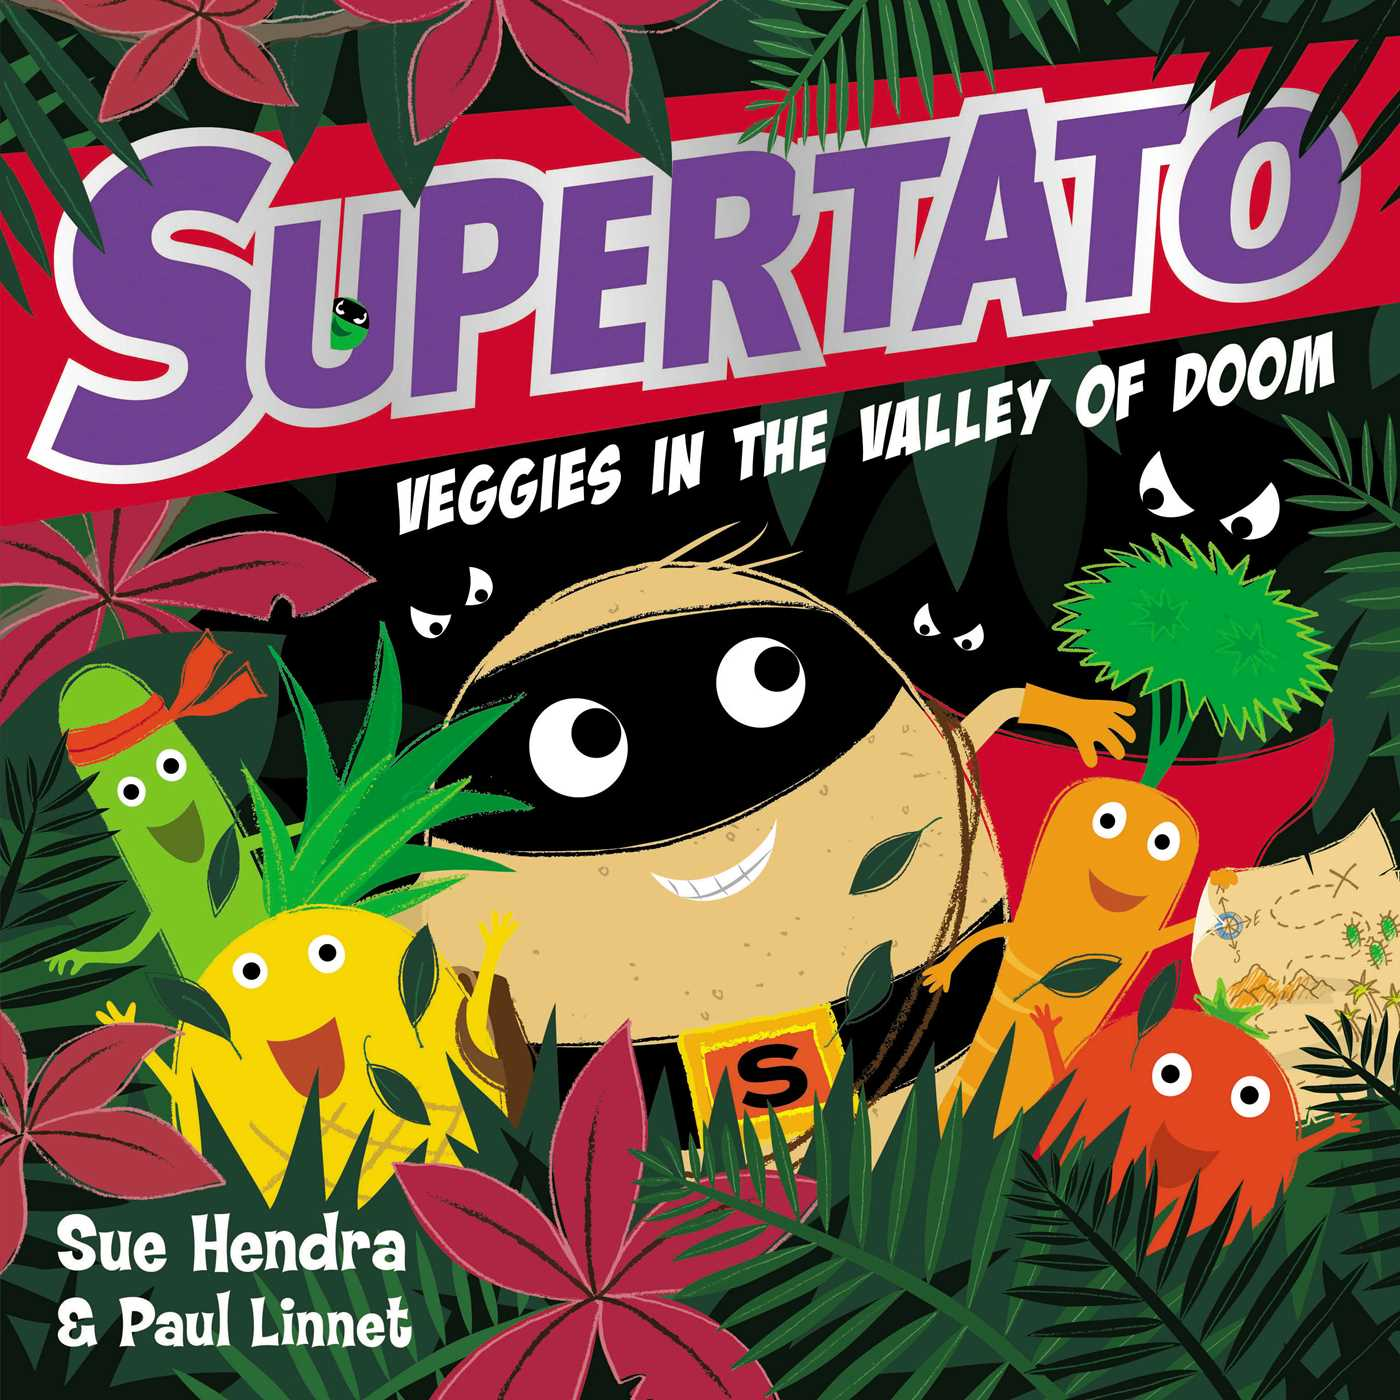 Supertato veggies in the valley of doom 9781471171710 hr